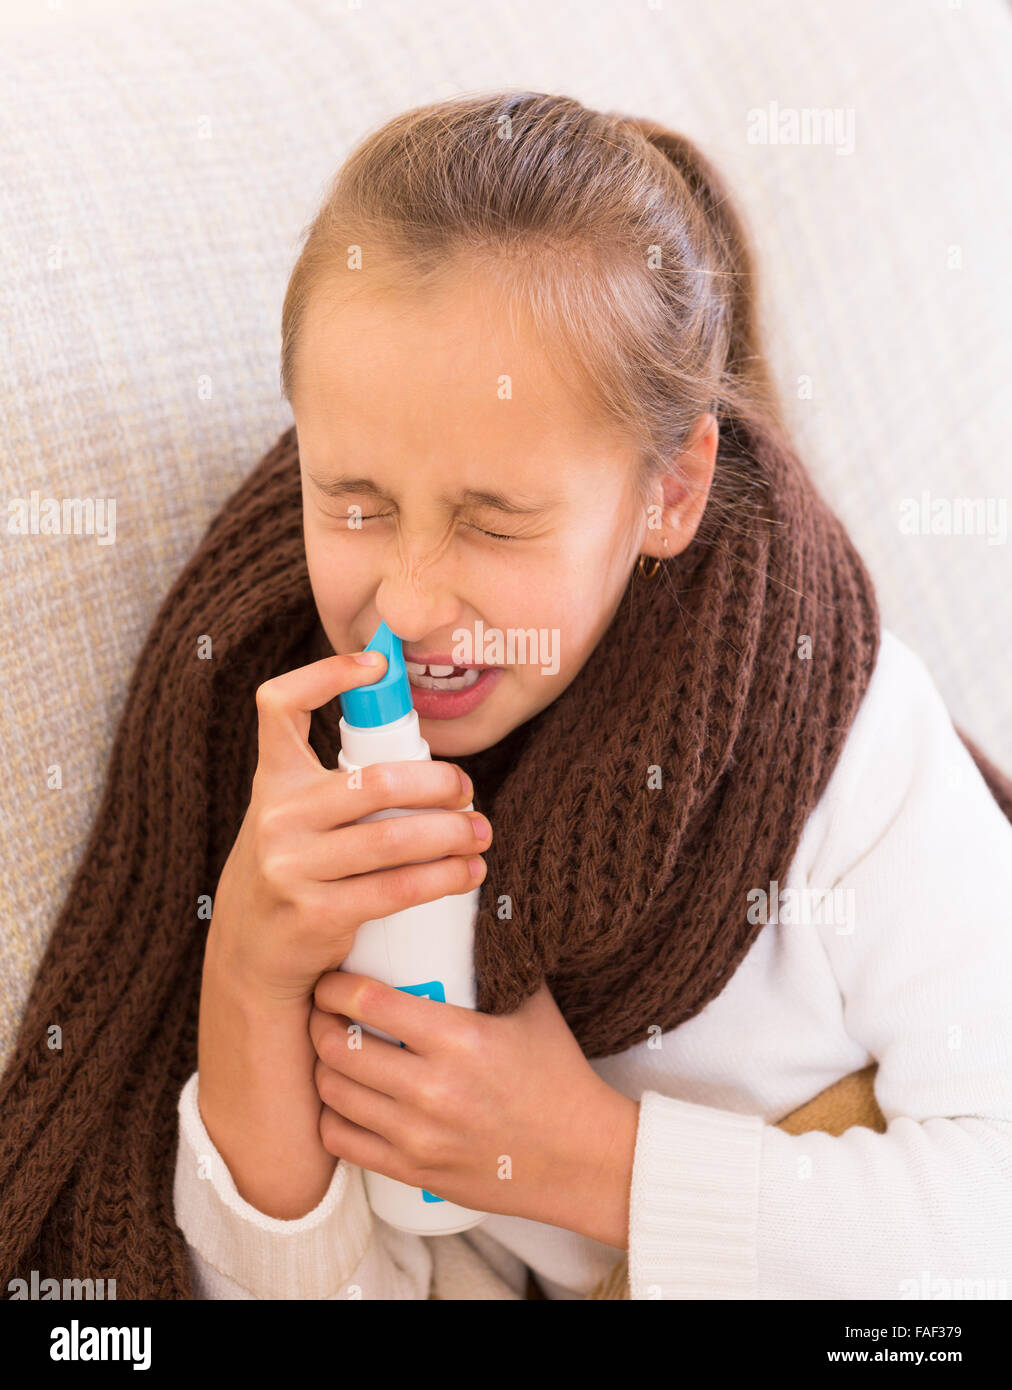 Sick child sitting on couch with nasal sprayer for rhinitis - Stock Image